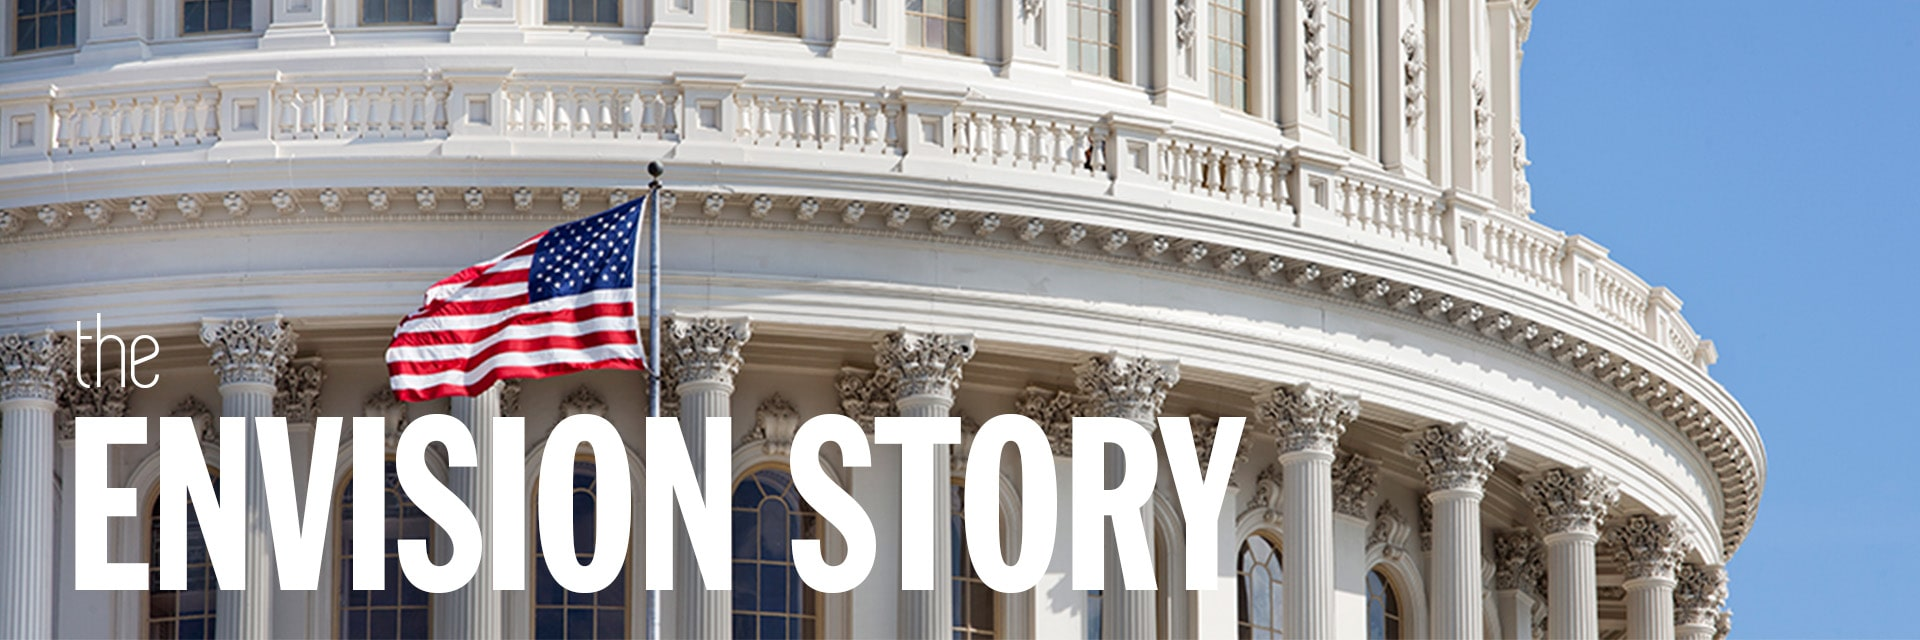 The Envision Story